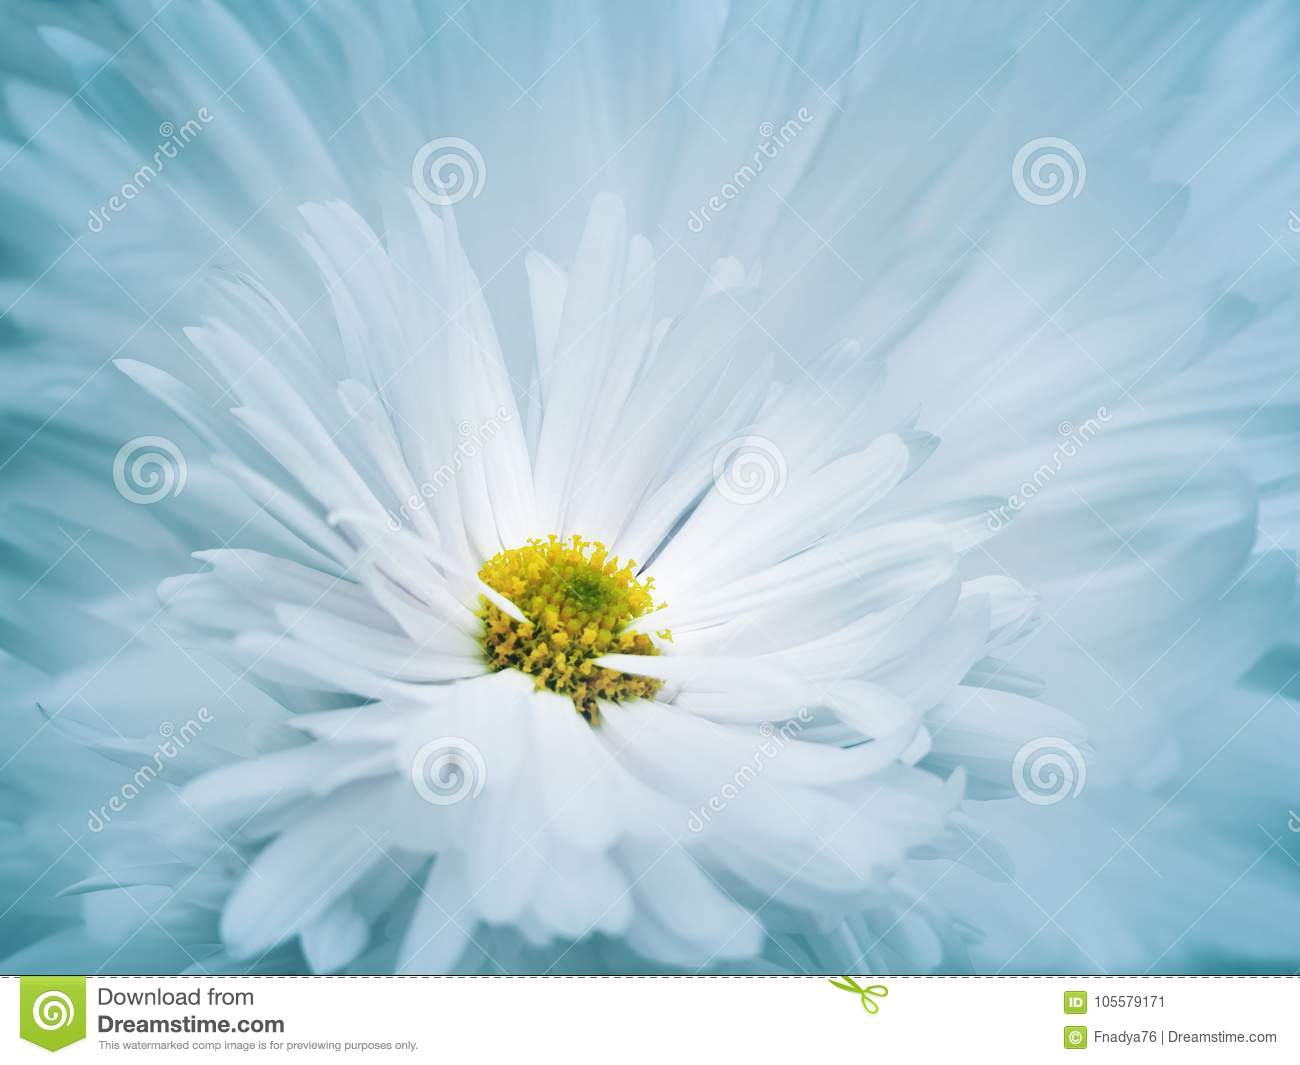 Floral turquoise-white beautiful background. A flower of a white chrysanthemum against a background of light blue petals. Close-up